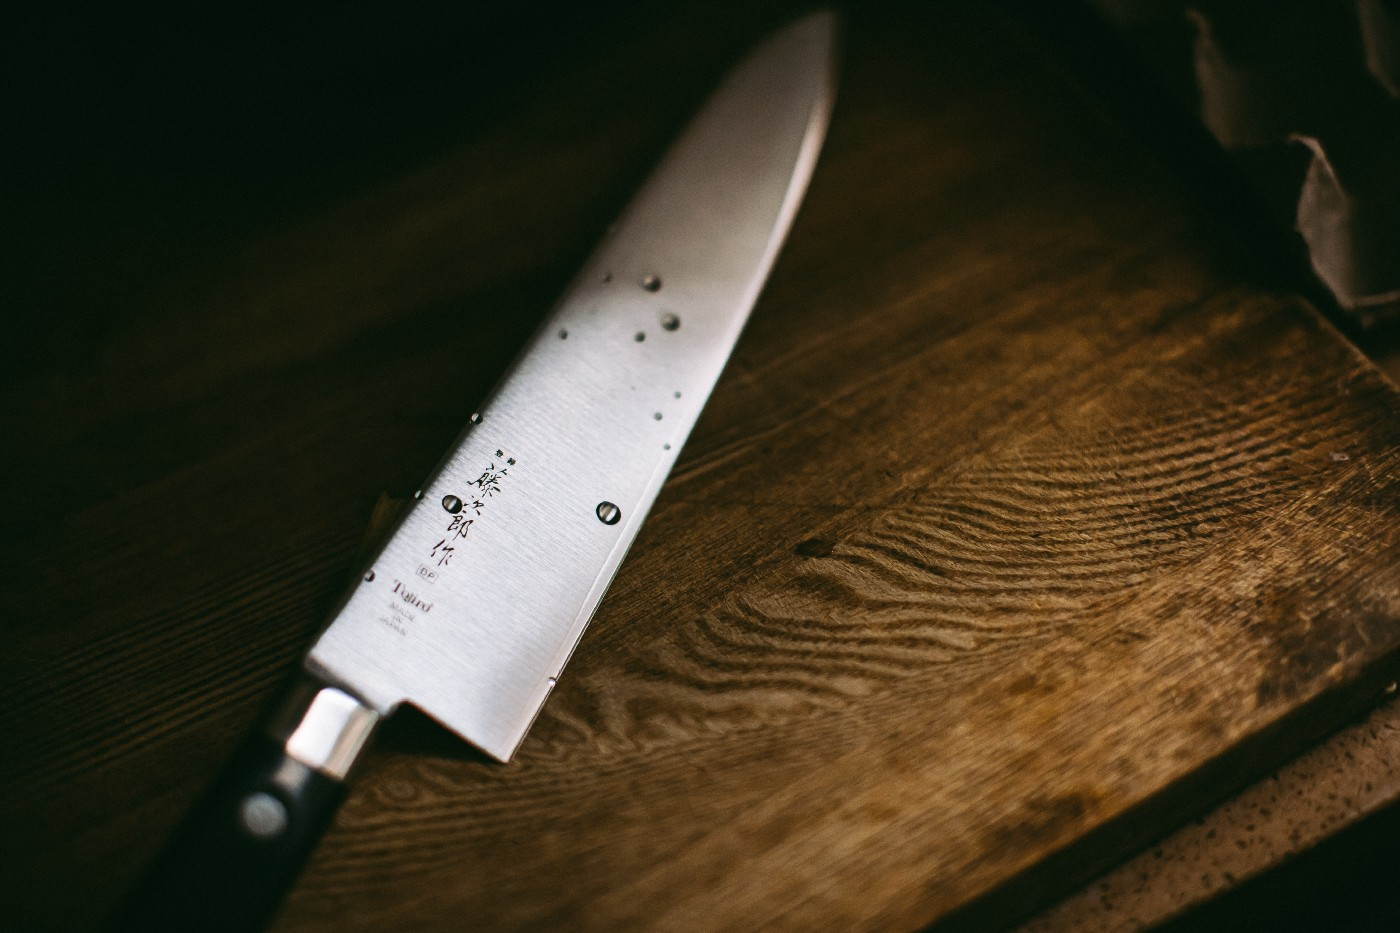 A photograph of a large knife